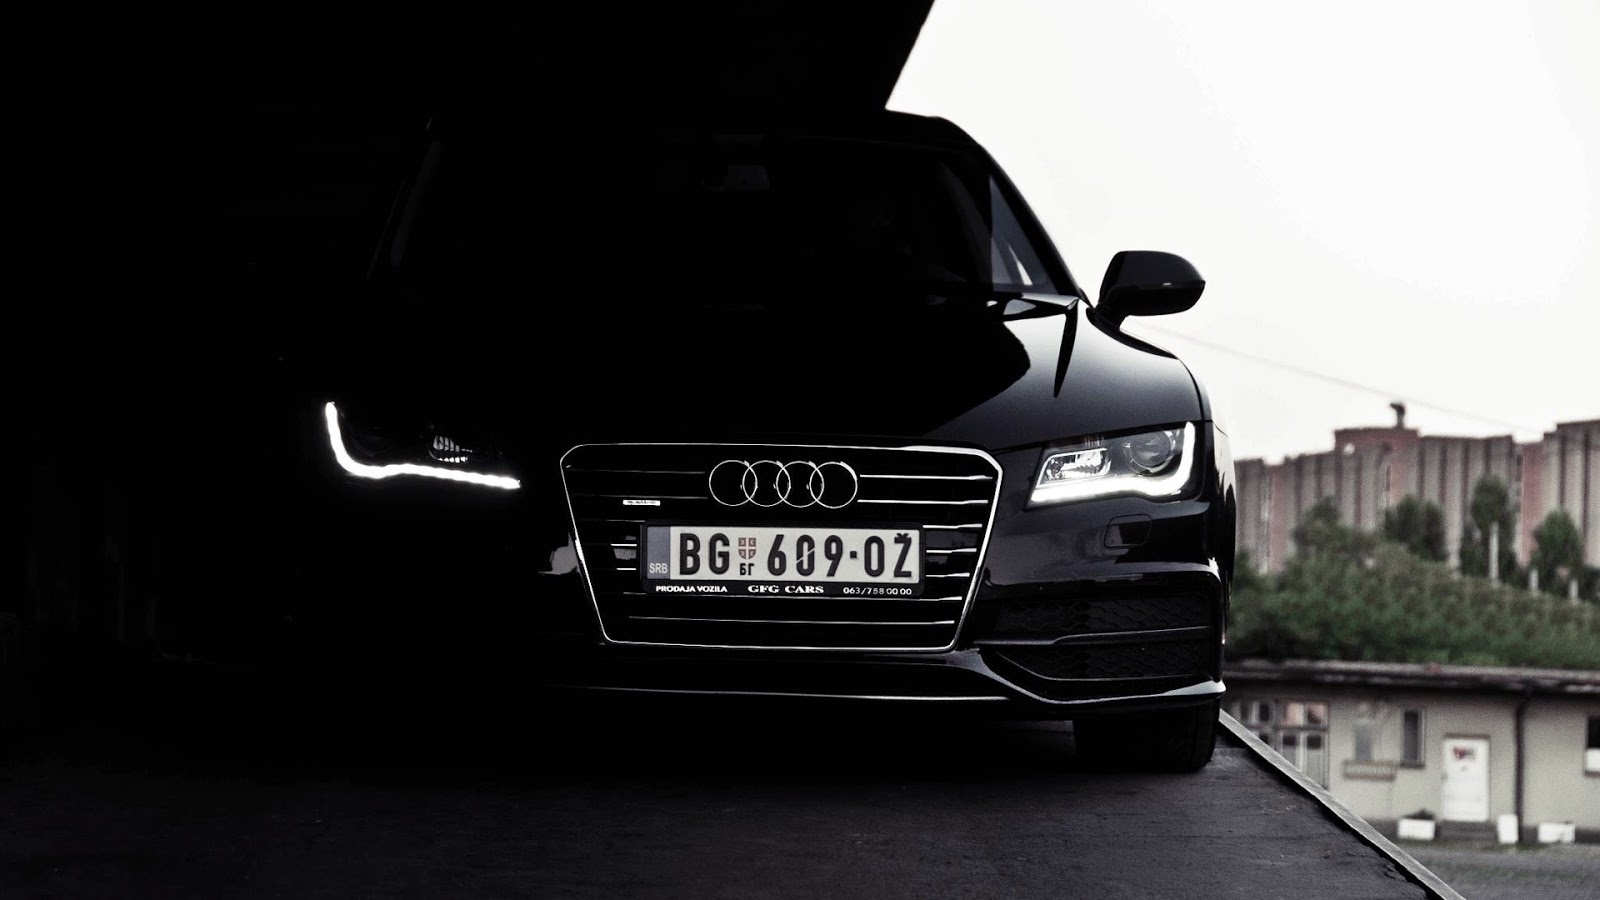 cool audi wallpaper 40266